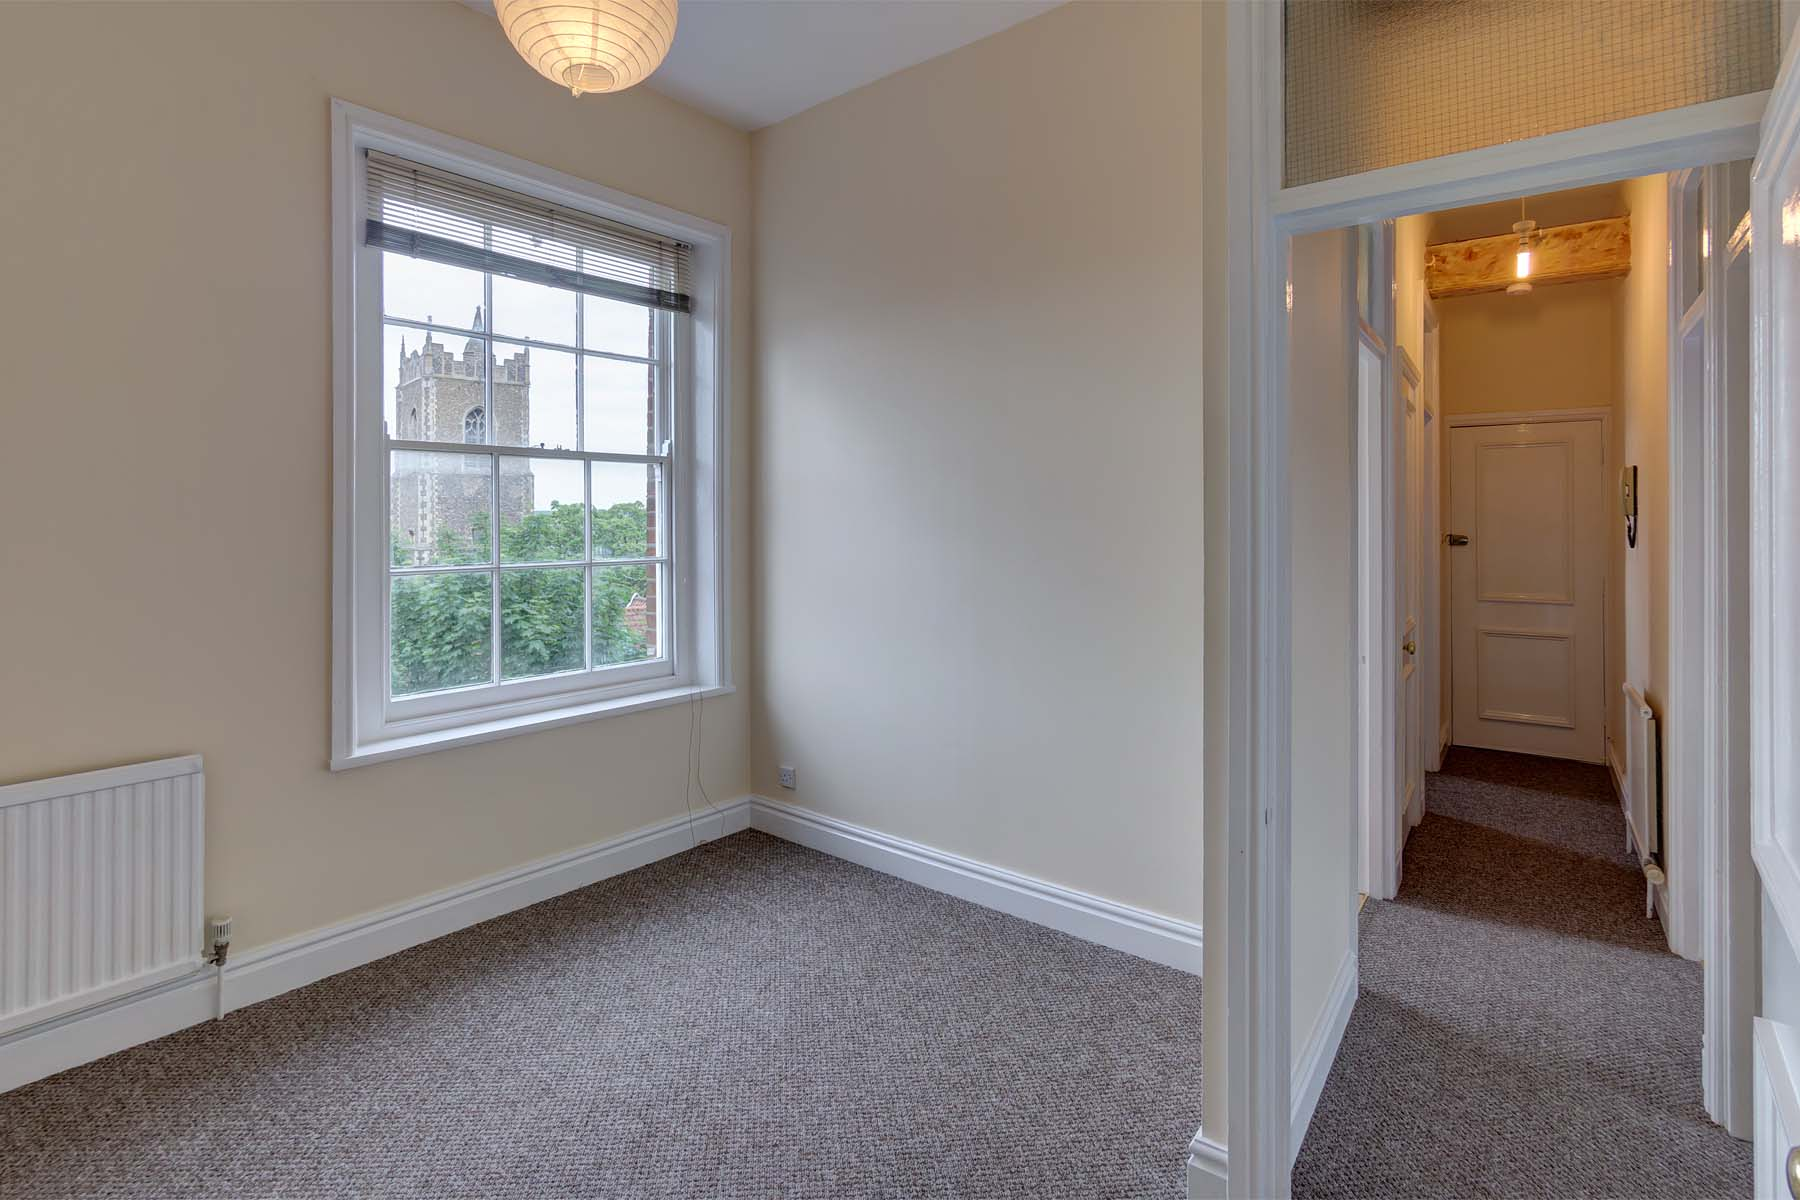 Booking a viewing for Colman House, Pottergate, NR2 1DY